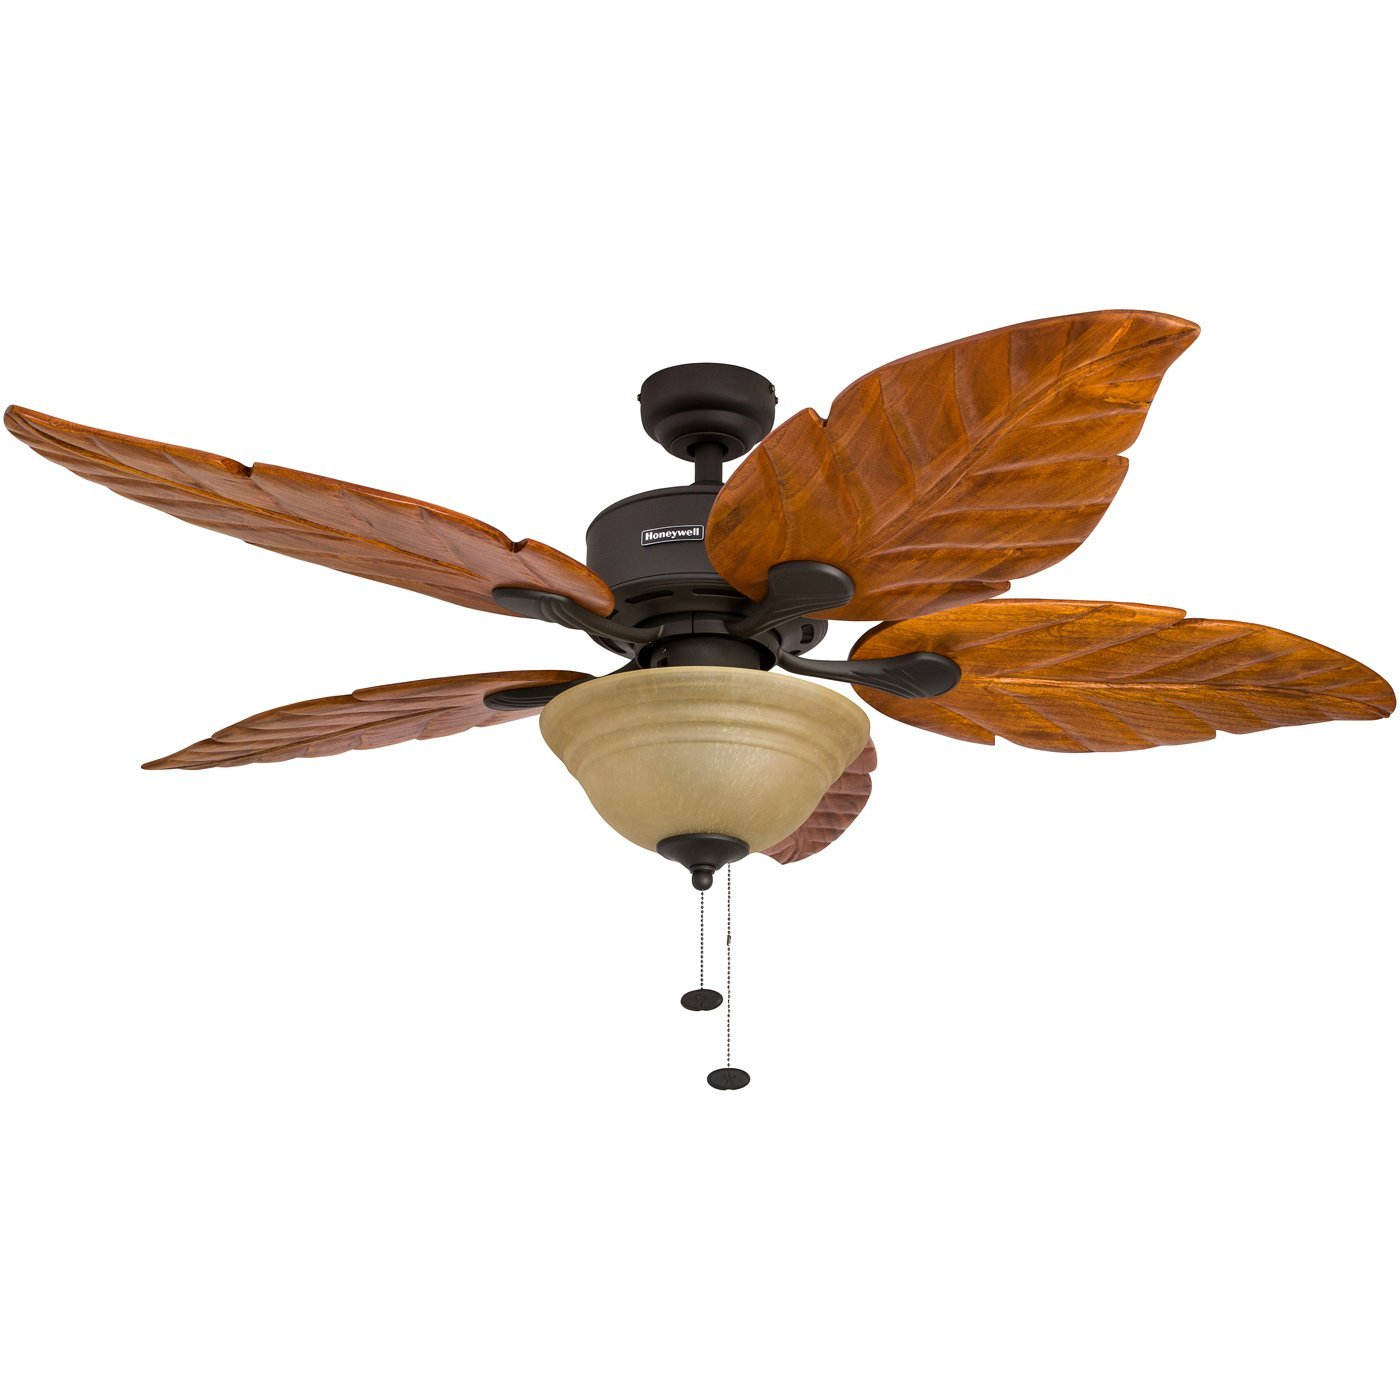 Tropical Ceiling Fans Giving A Natural Look Cool Ideas